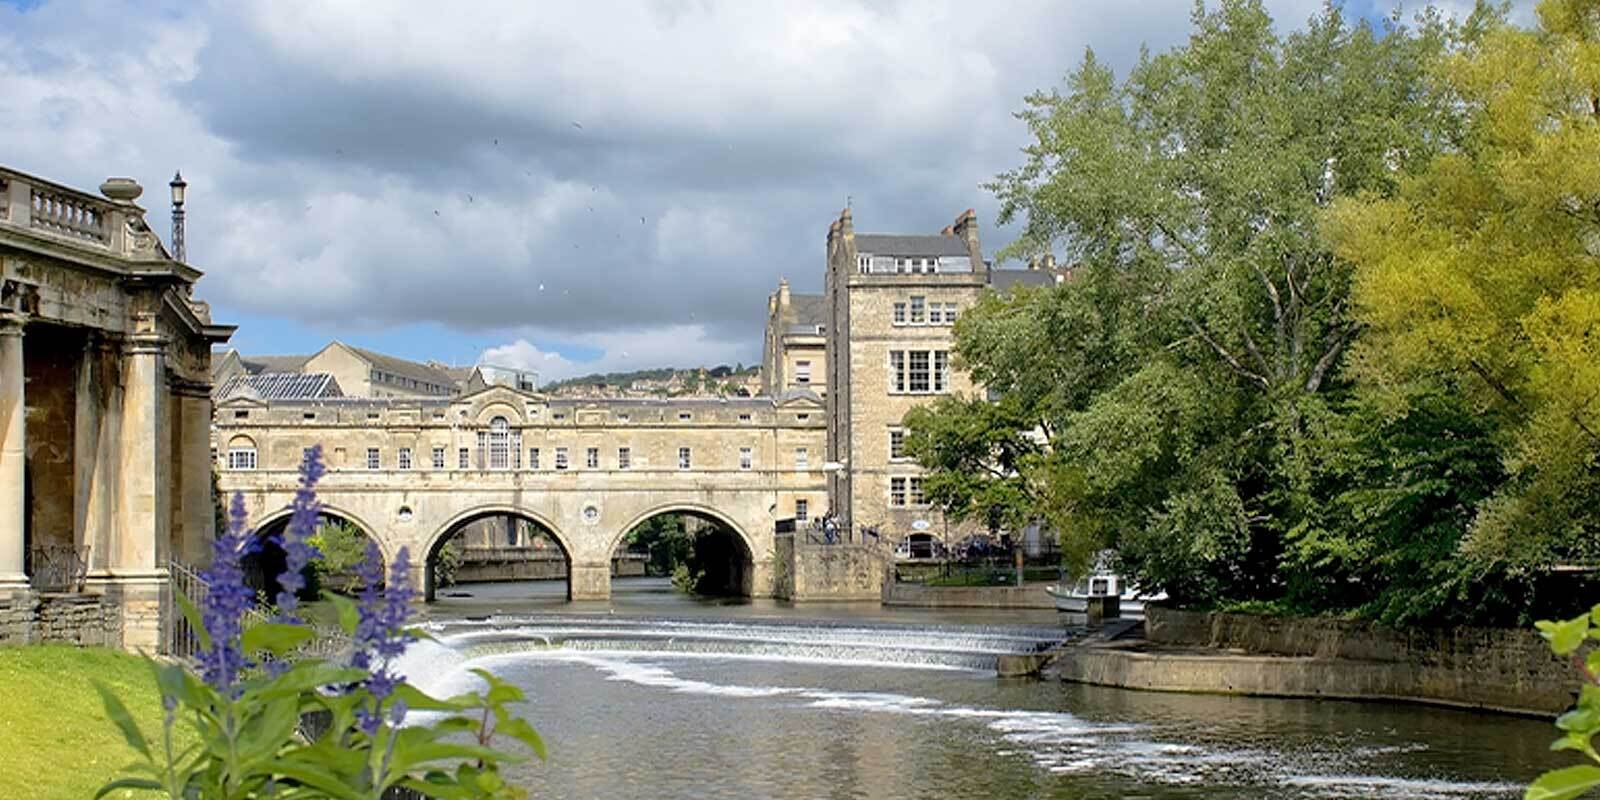 Visit Bath by luxury train on the Northern Belle